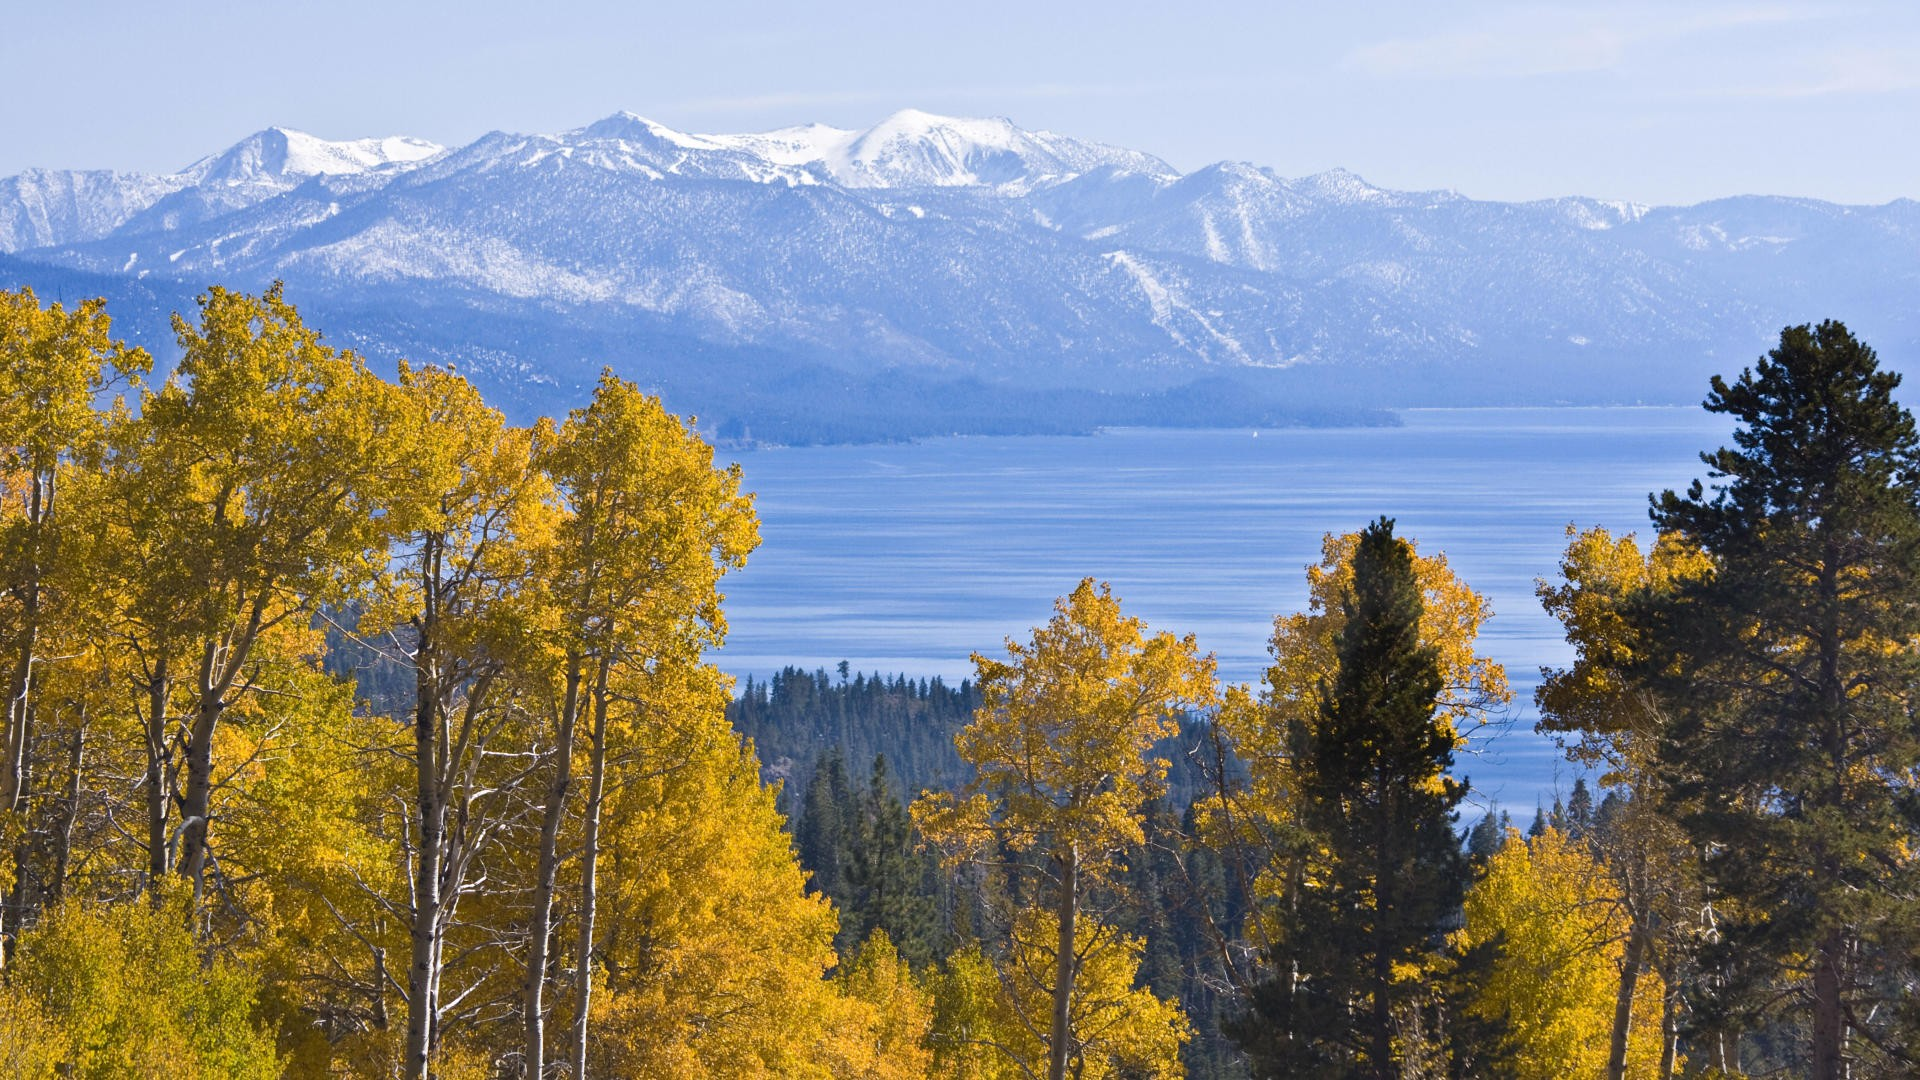 tahoe city women Find therapists in tahoe city, placer county, california, psychologists, marriage counseling, therapy, counselors, psychiatrists.